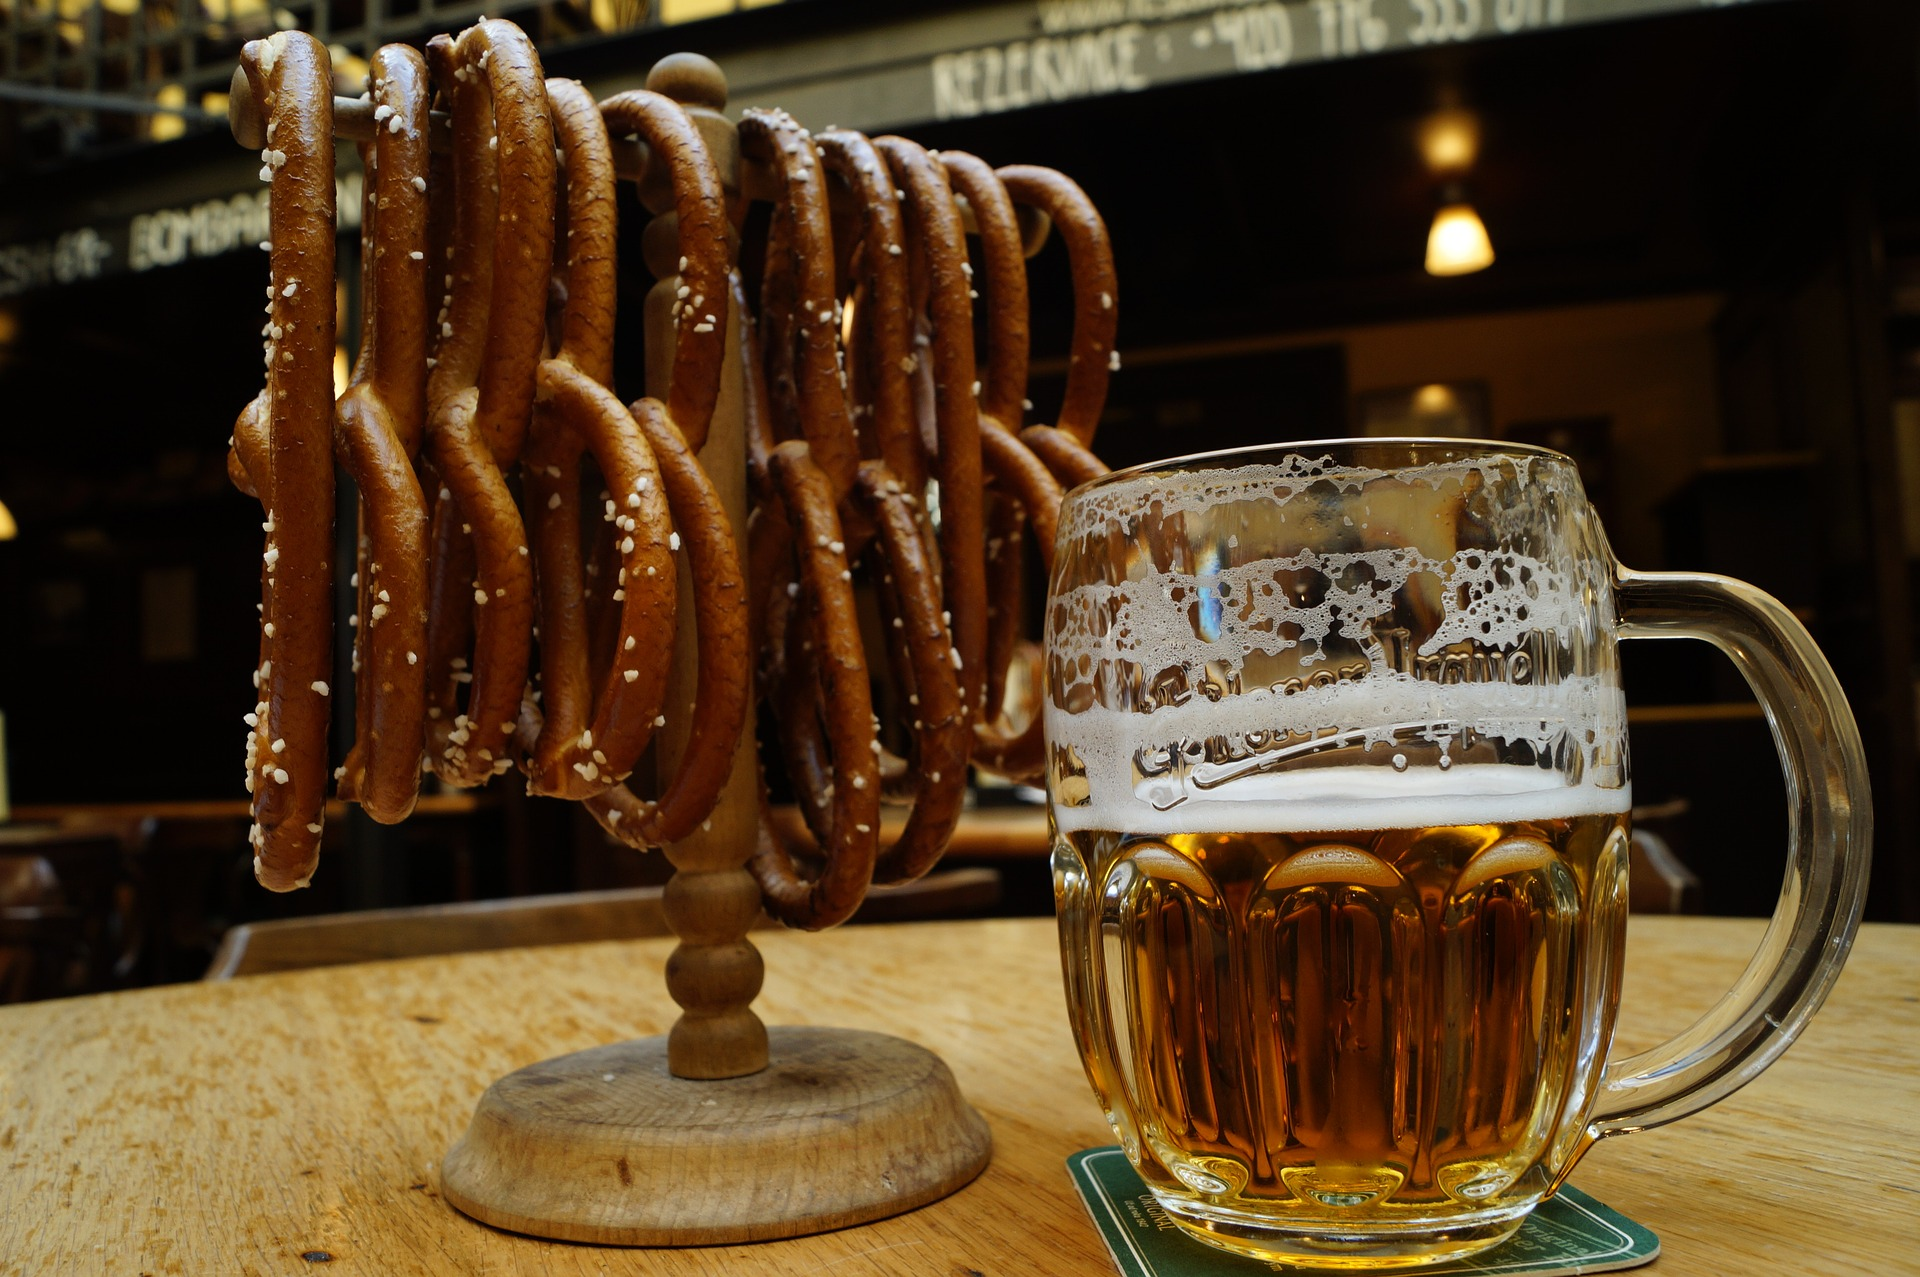 Czech beer and pretzels make the perfect midday snack in Prague